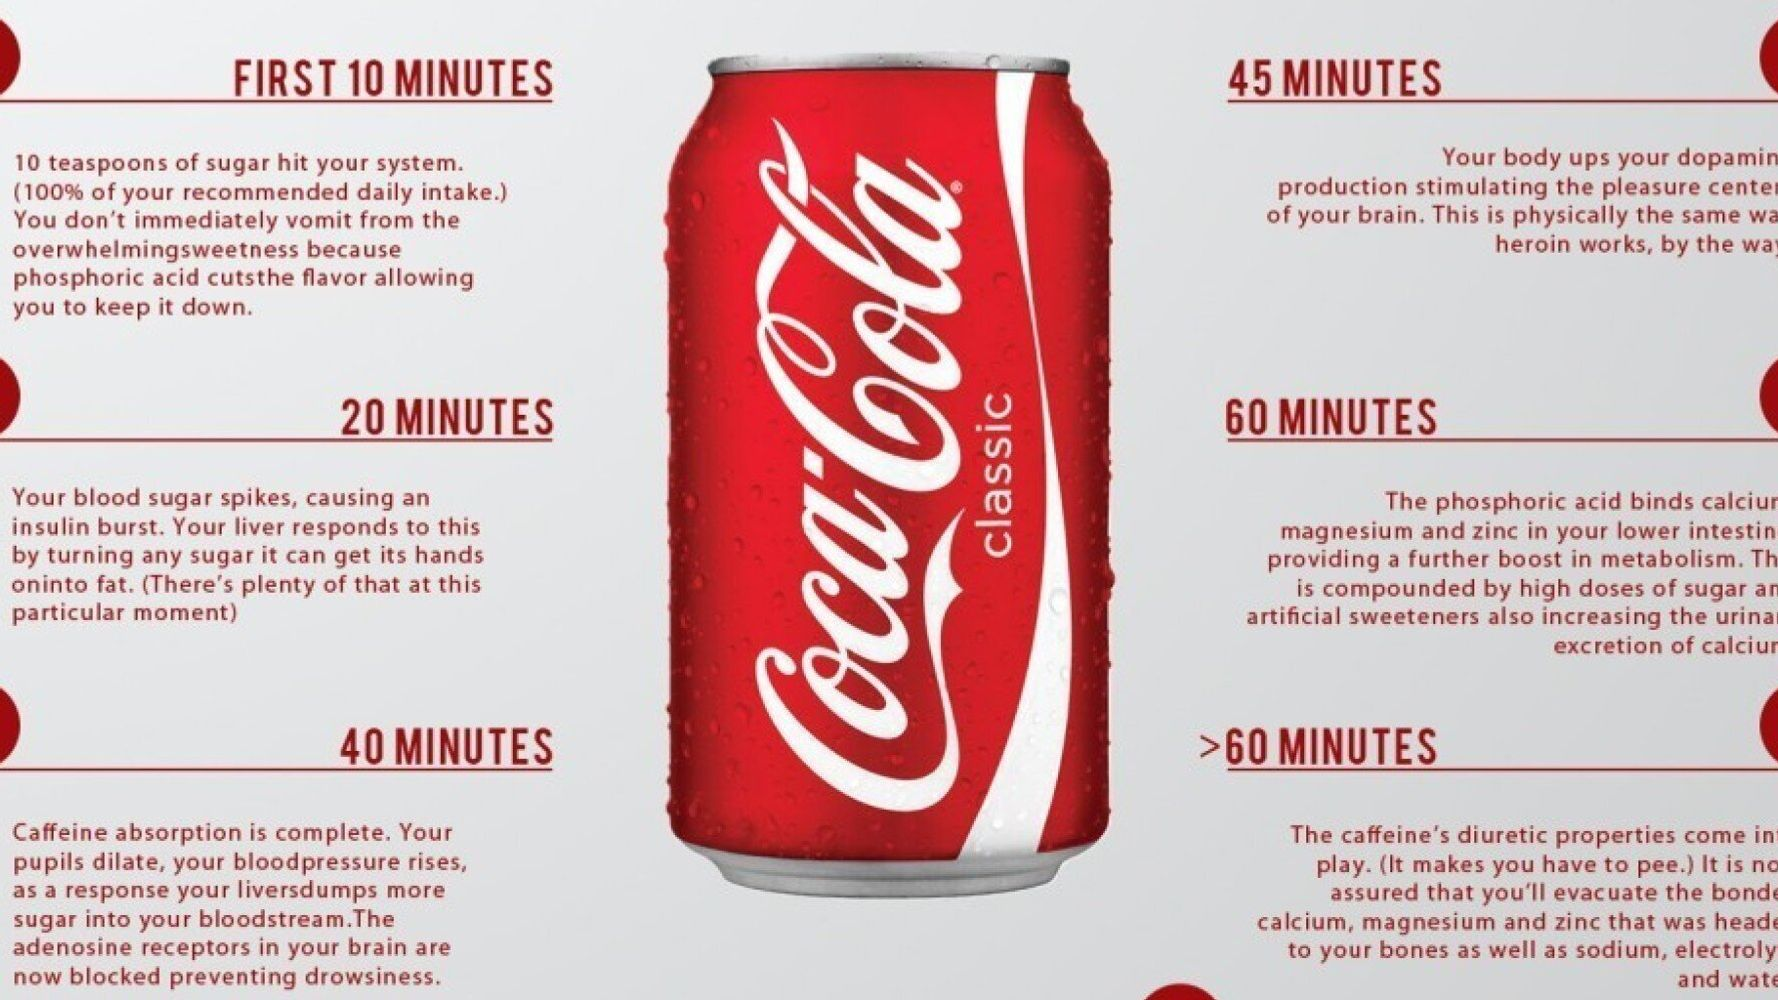 How Coca Cola Affects Your Body In 60 Minutes | HuffPost Life